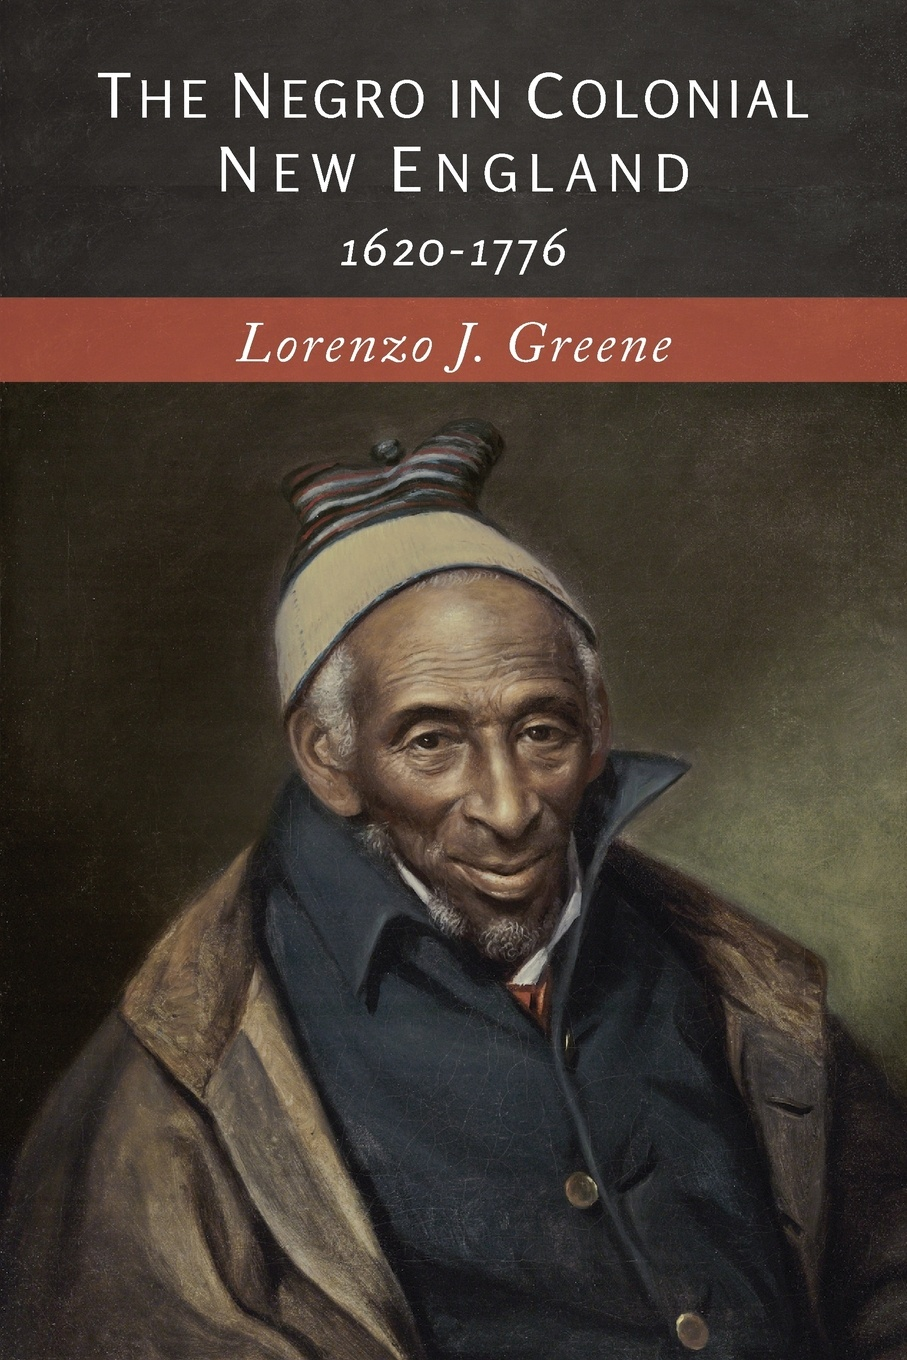 Lorenzo Johnston Greene The Negro in Colonial New England. 1620-1776 elisa new new england beyond criticism in defense of america s first literature isbn 9781118854563